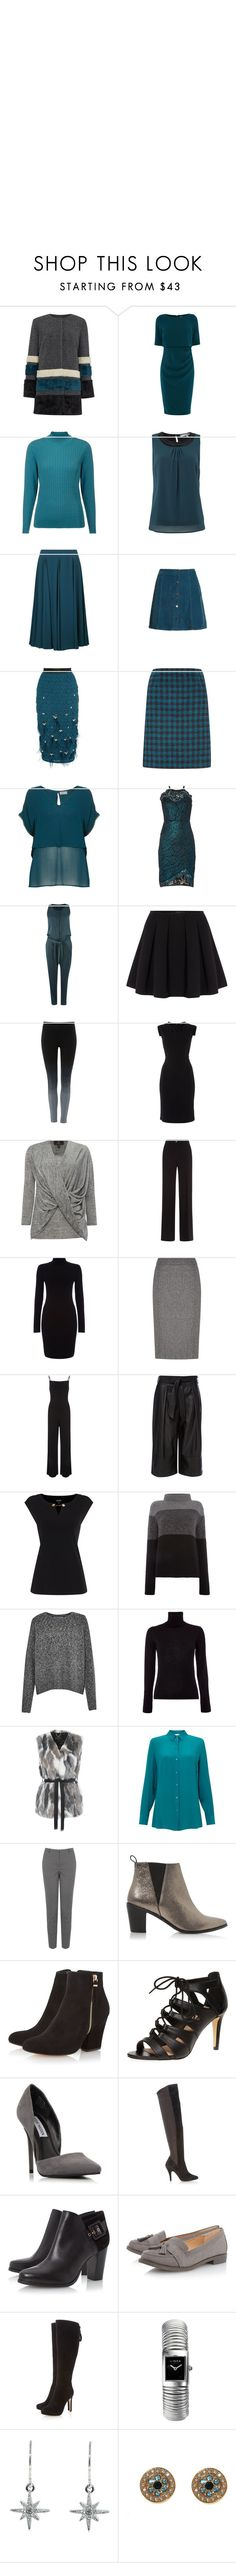 """""""Untitled #3371"""" by luciana-boneca on Polyvore featuring Pied a Terre, Coast, Eastex, La Fée Maraboutée, Jacques Vert, Superdry, Hobbs, Label Lab, Lipsy and Pennyblack"""